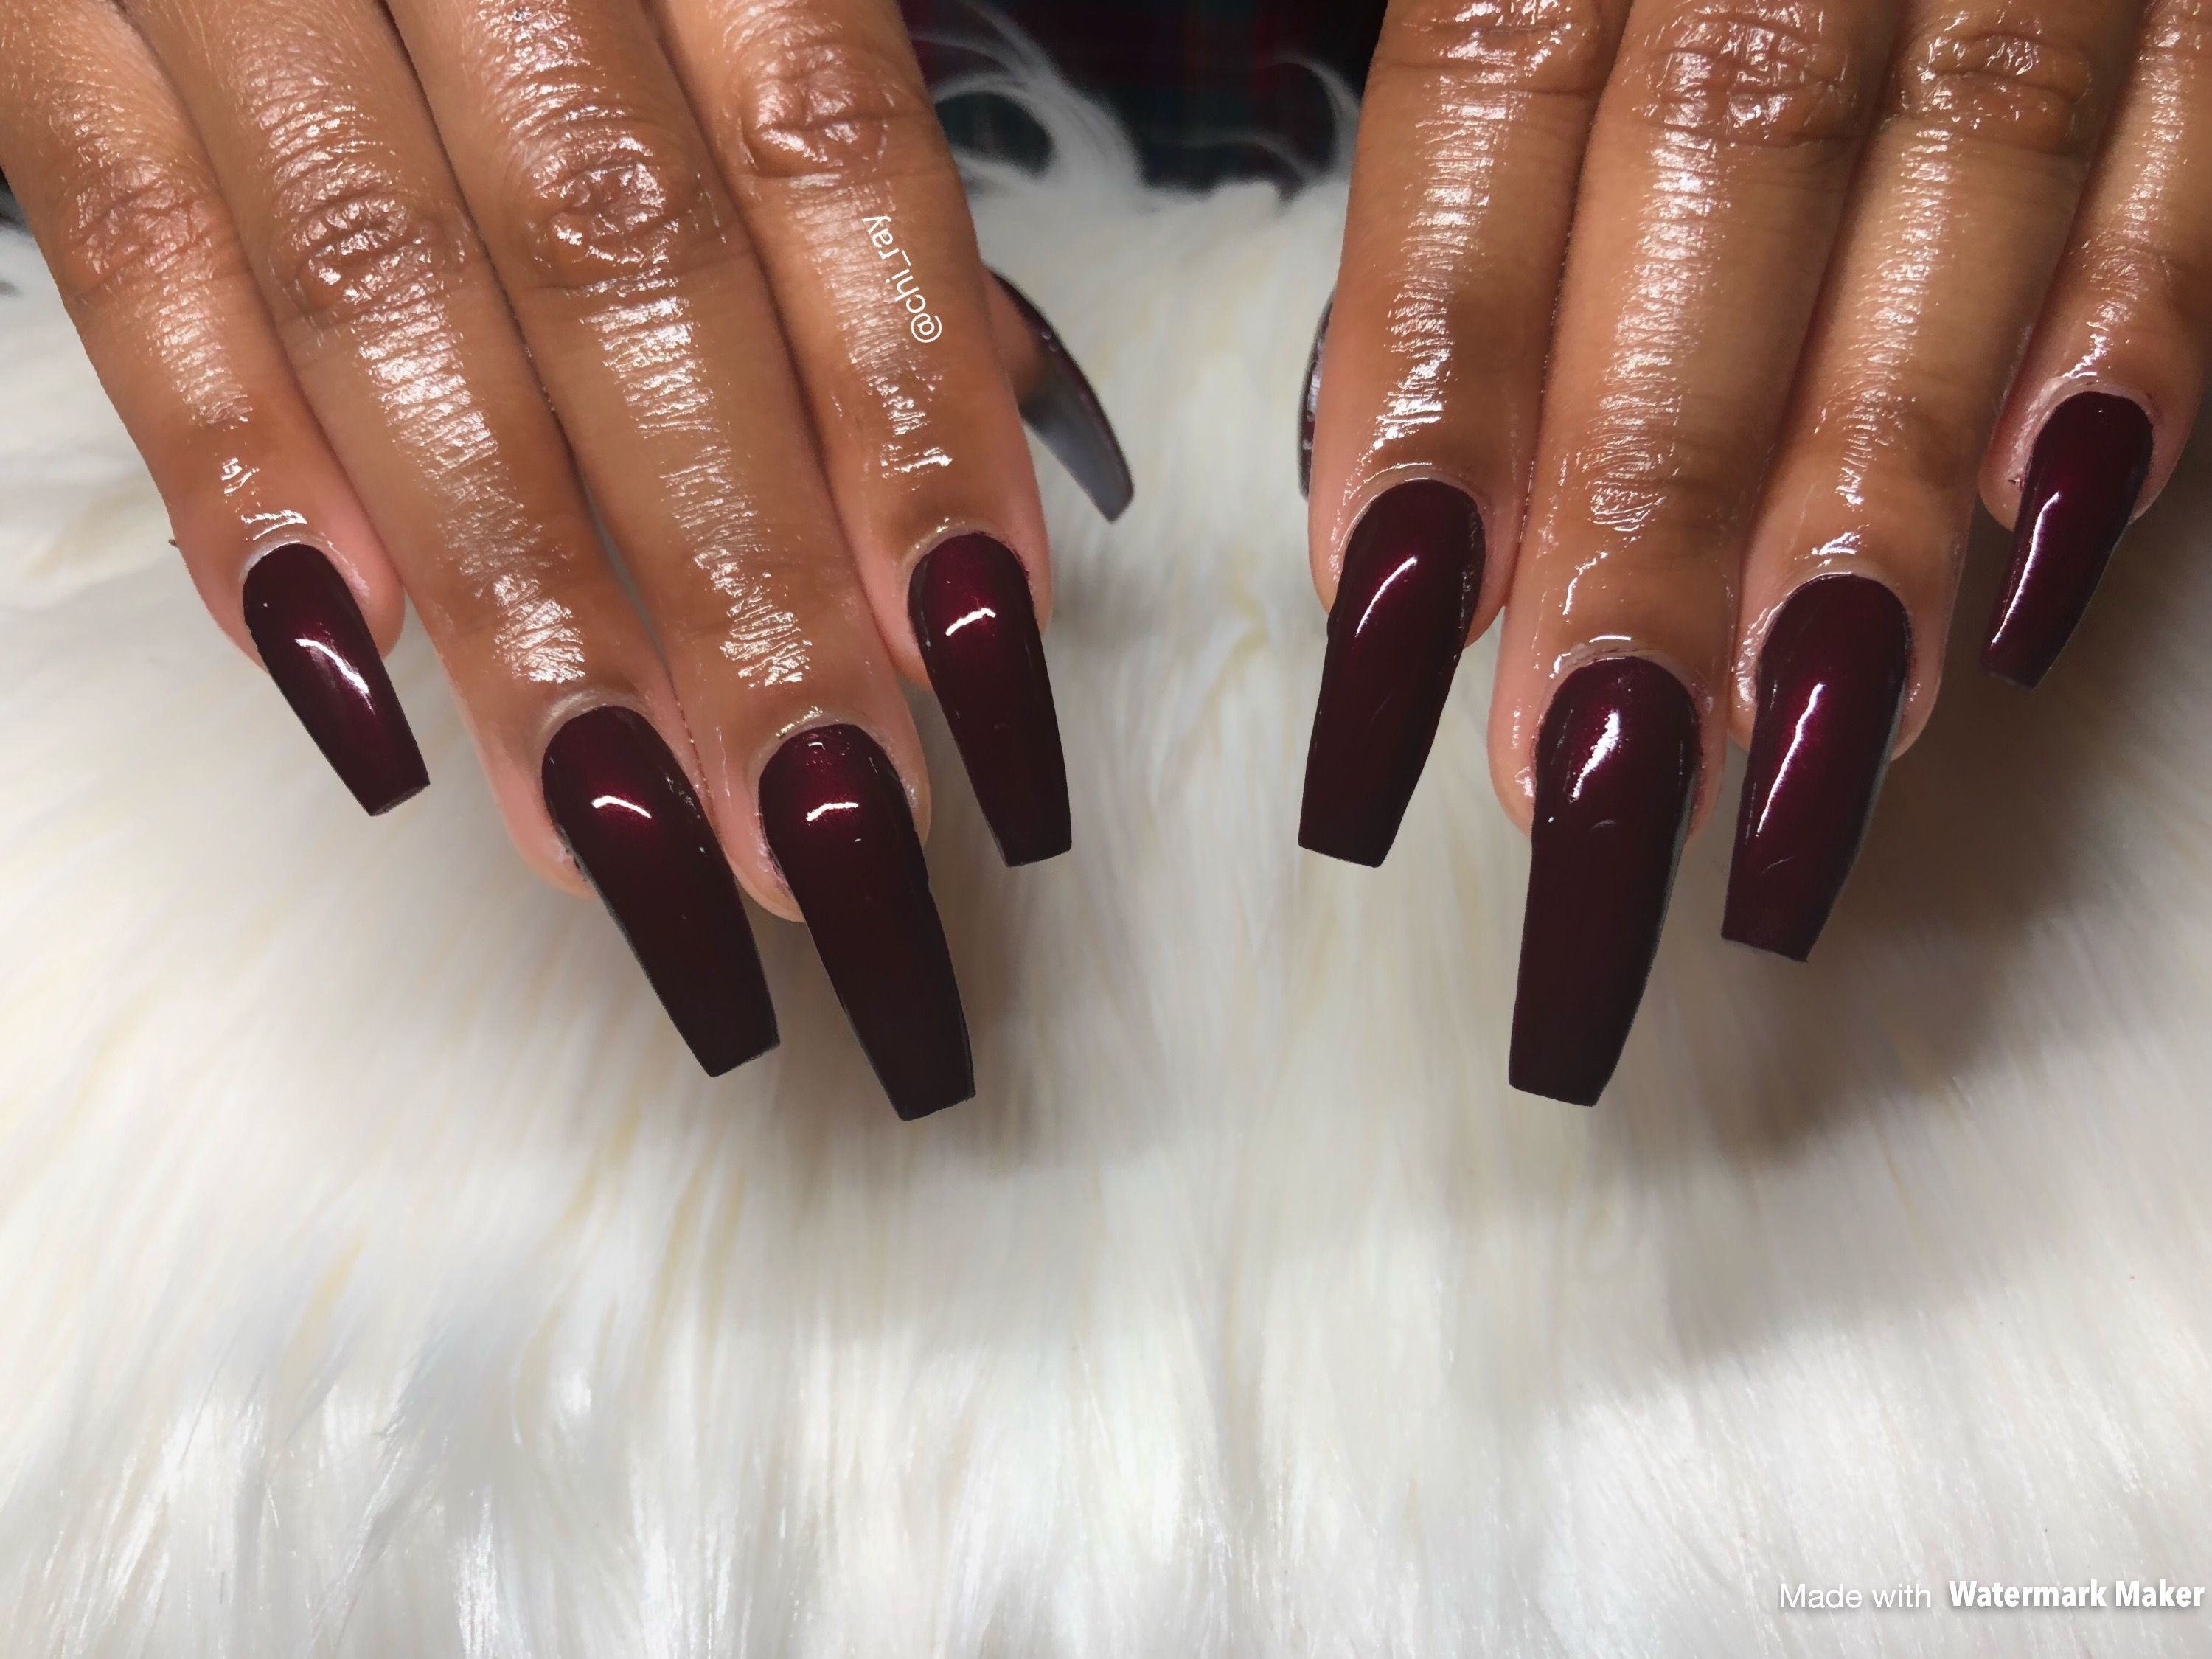 Merlot Winter Nail Trends Long Tapered Square Nails Coffin Nails ...